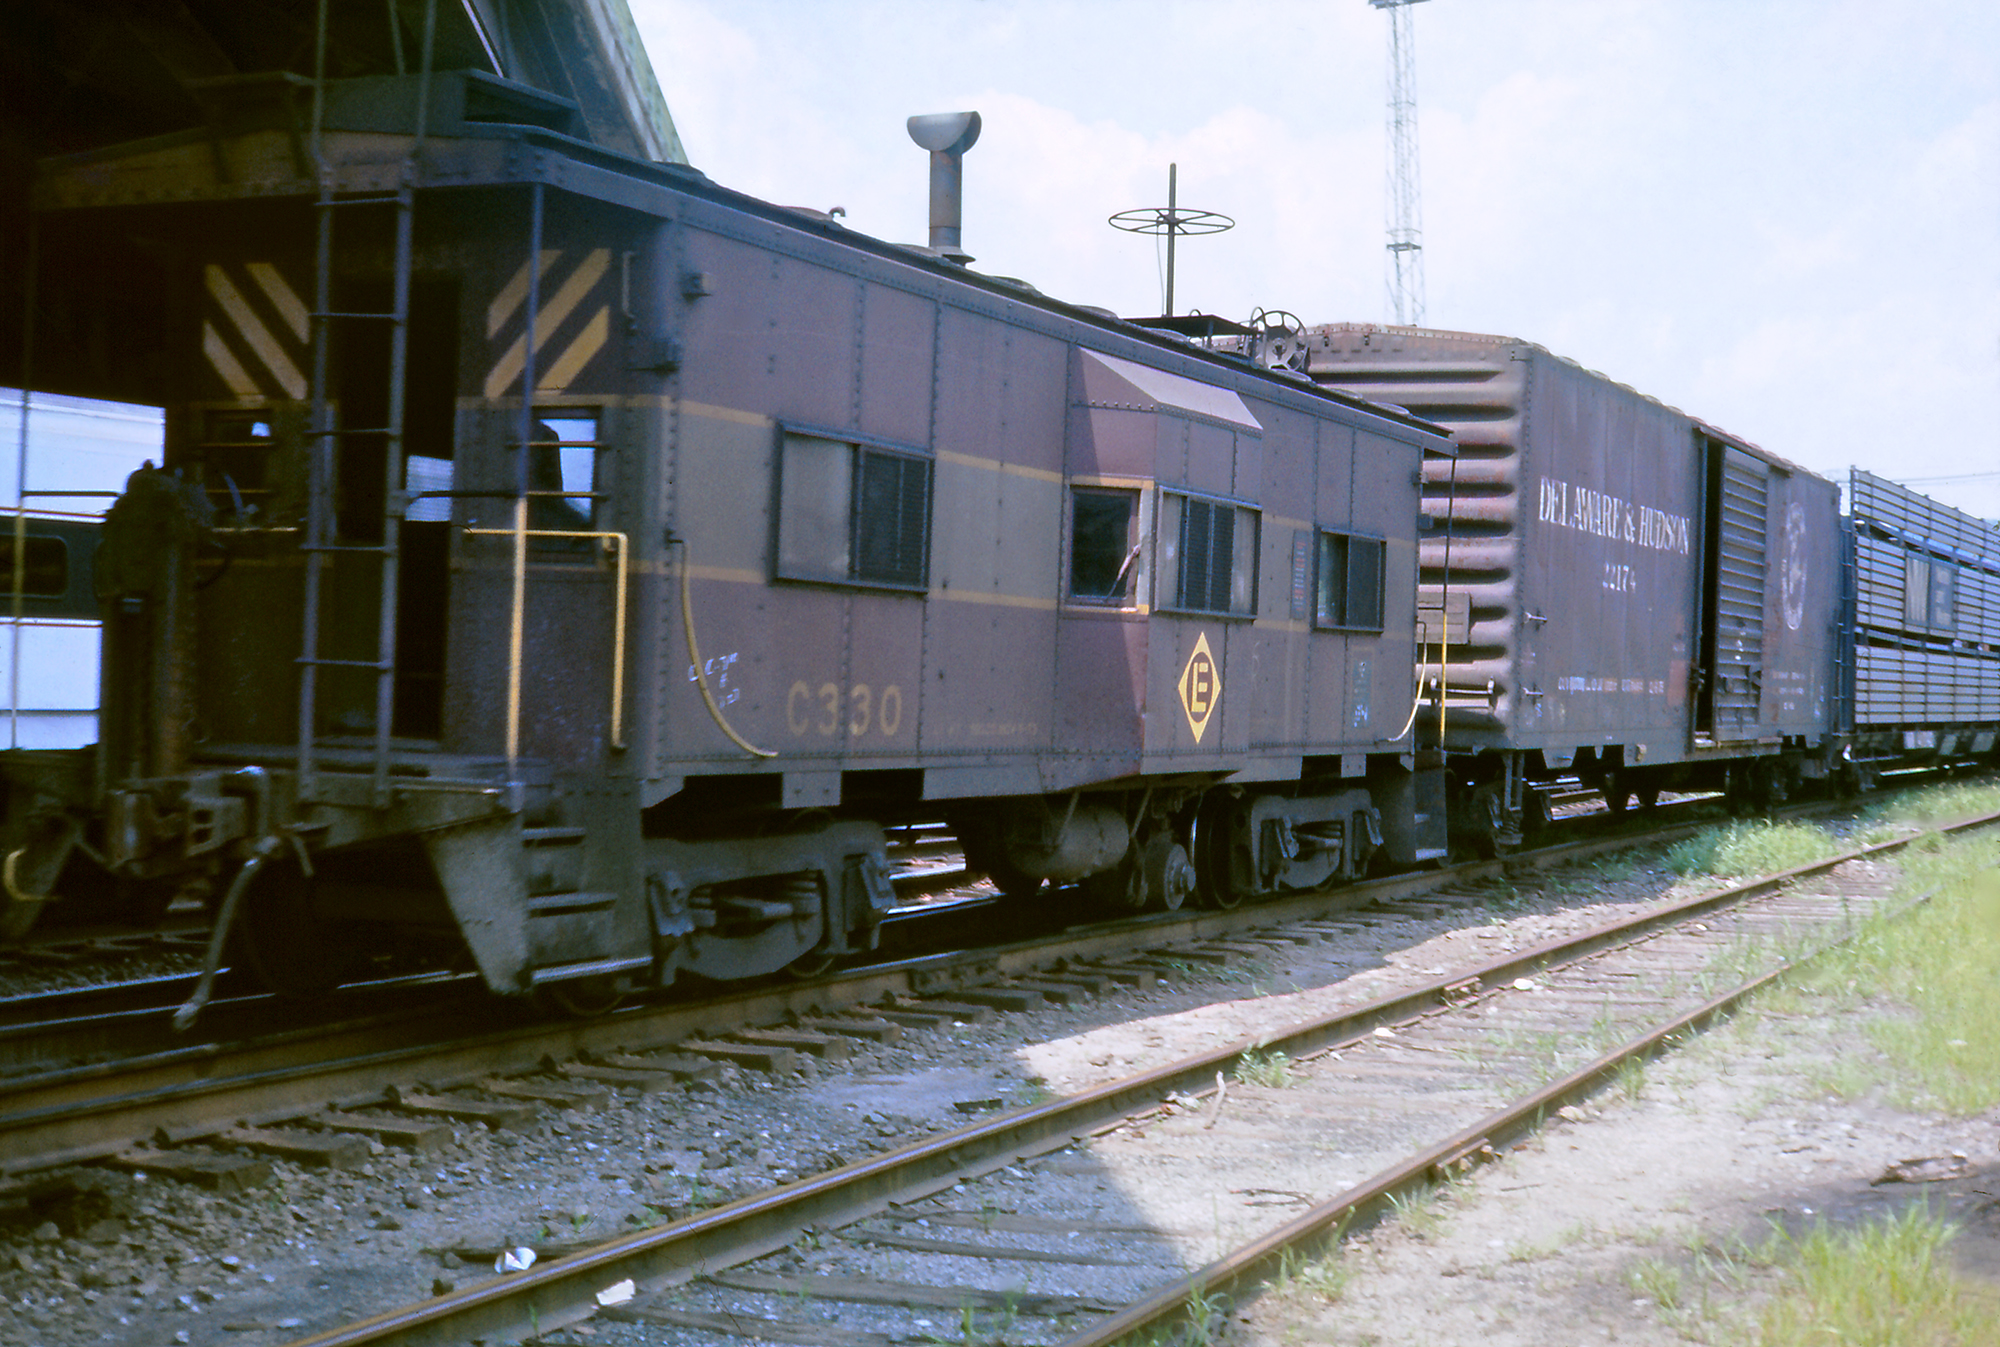 Just after the Conrail merger, this August 1976 view finds No. C330 in Suffern, NY, still in its Erie Lackawanna paint job.  (Rudy Garbely collection)